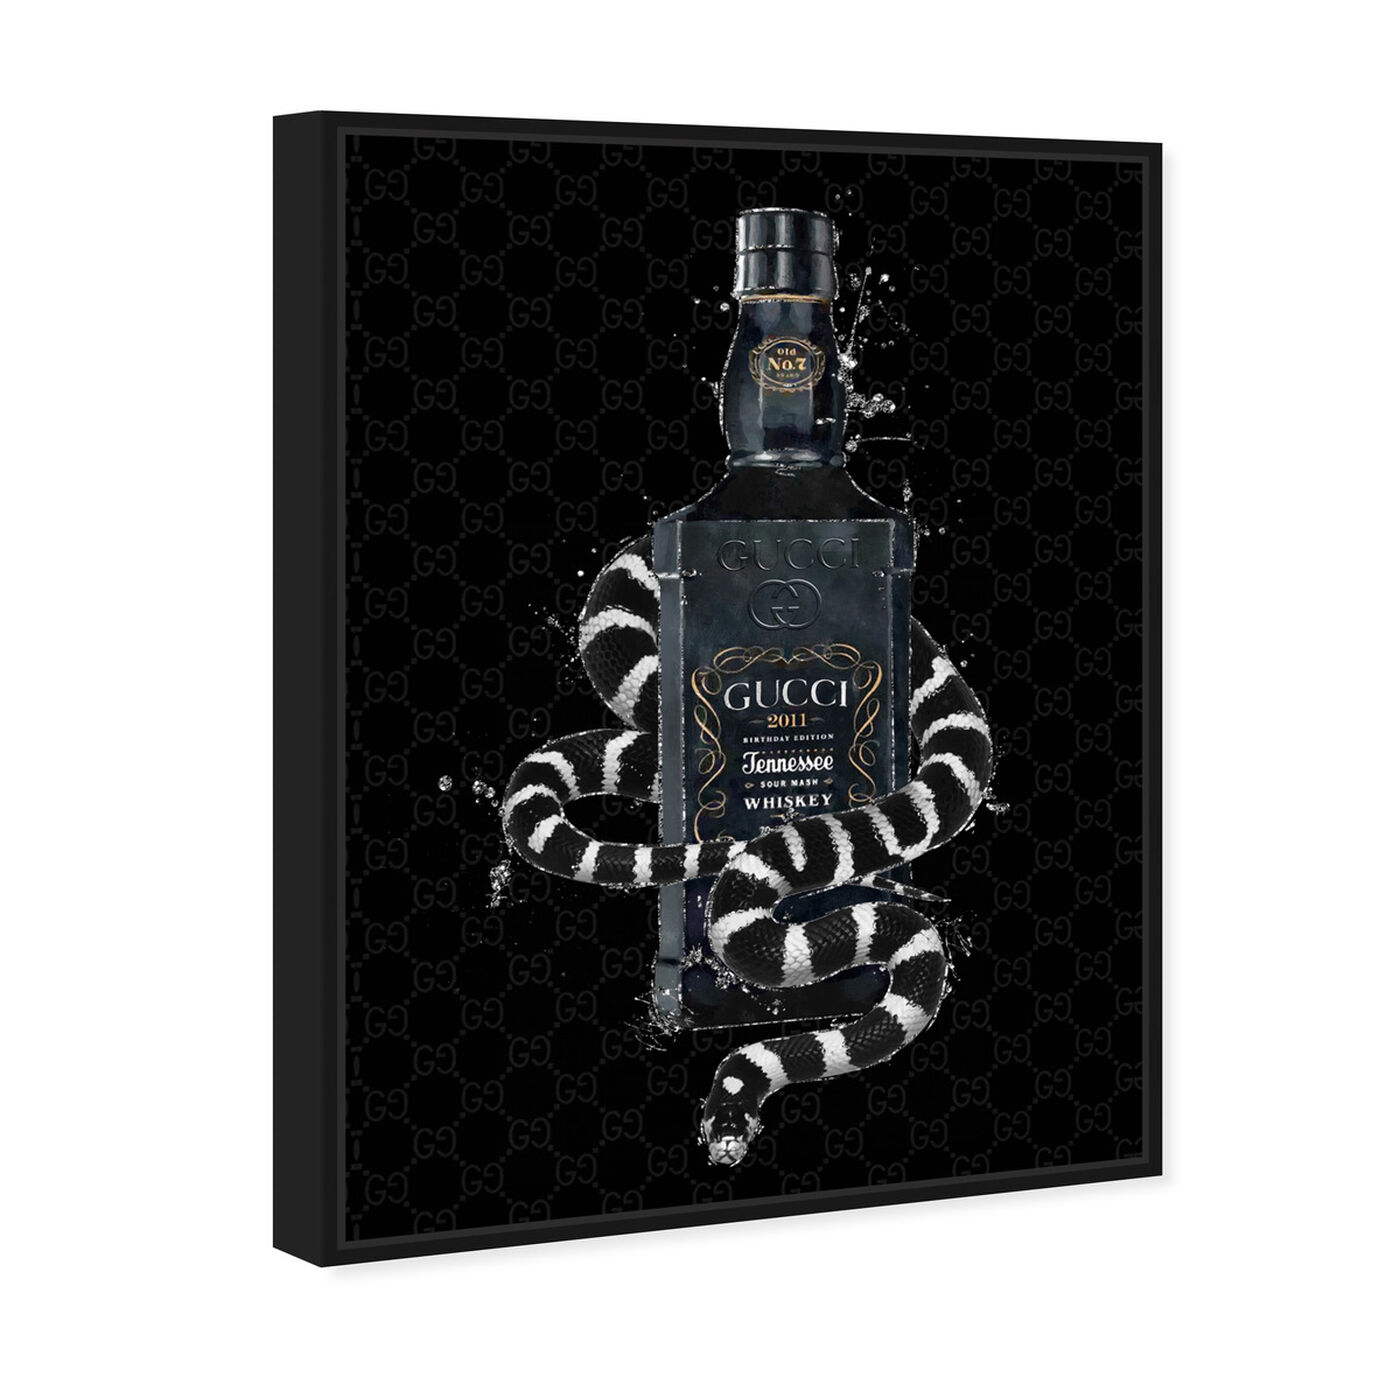 Angled view of Italian Black Label featuring fashion and glam and perfumes art.